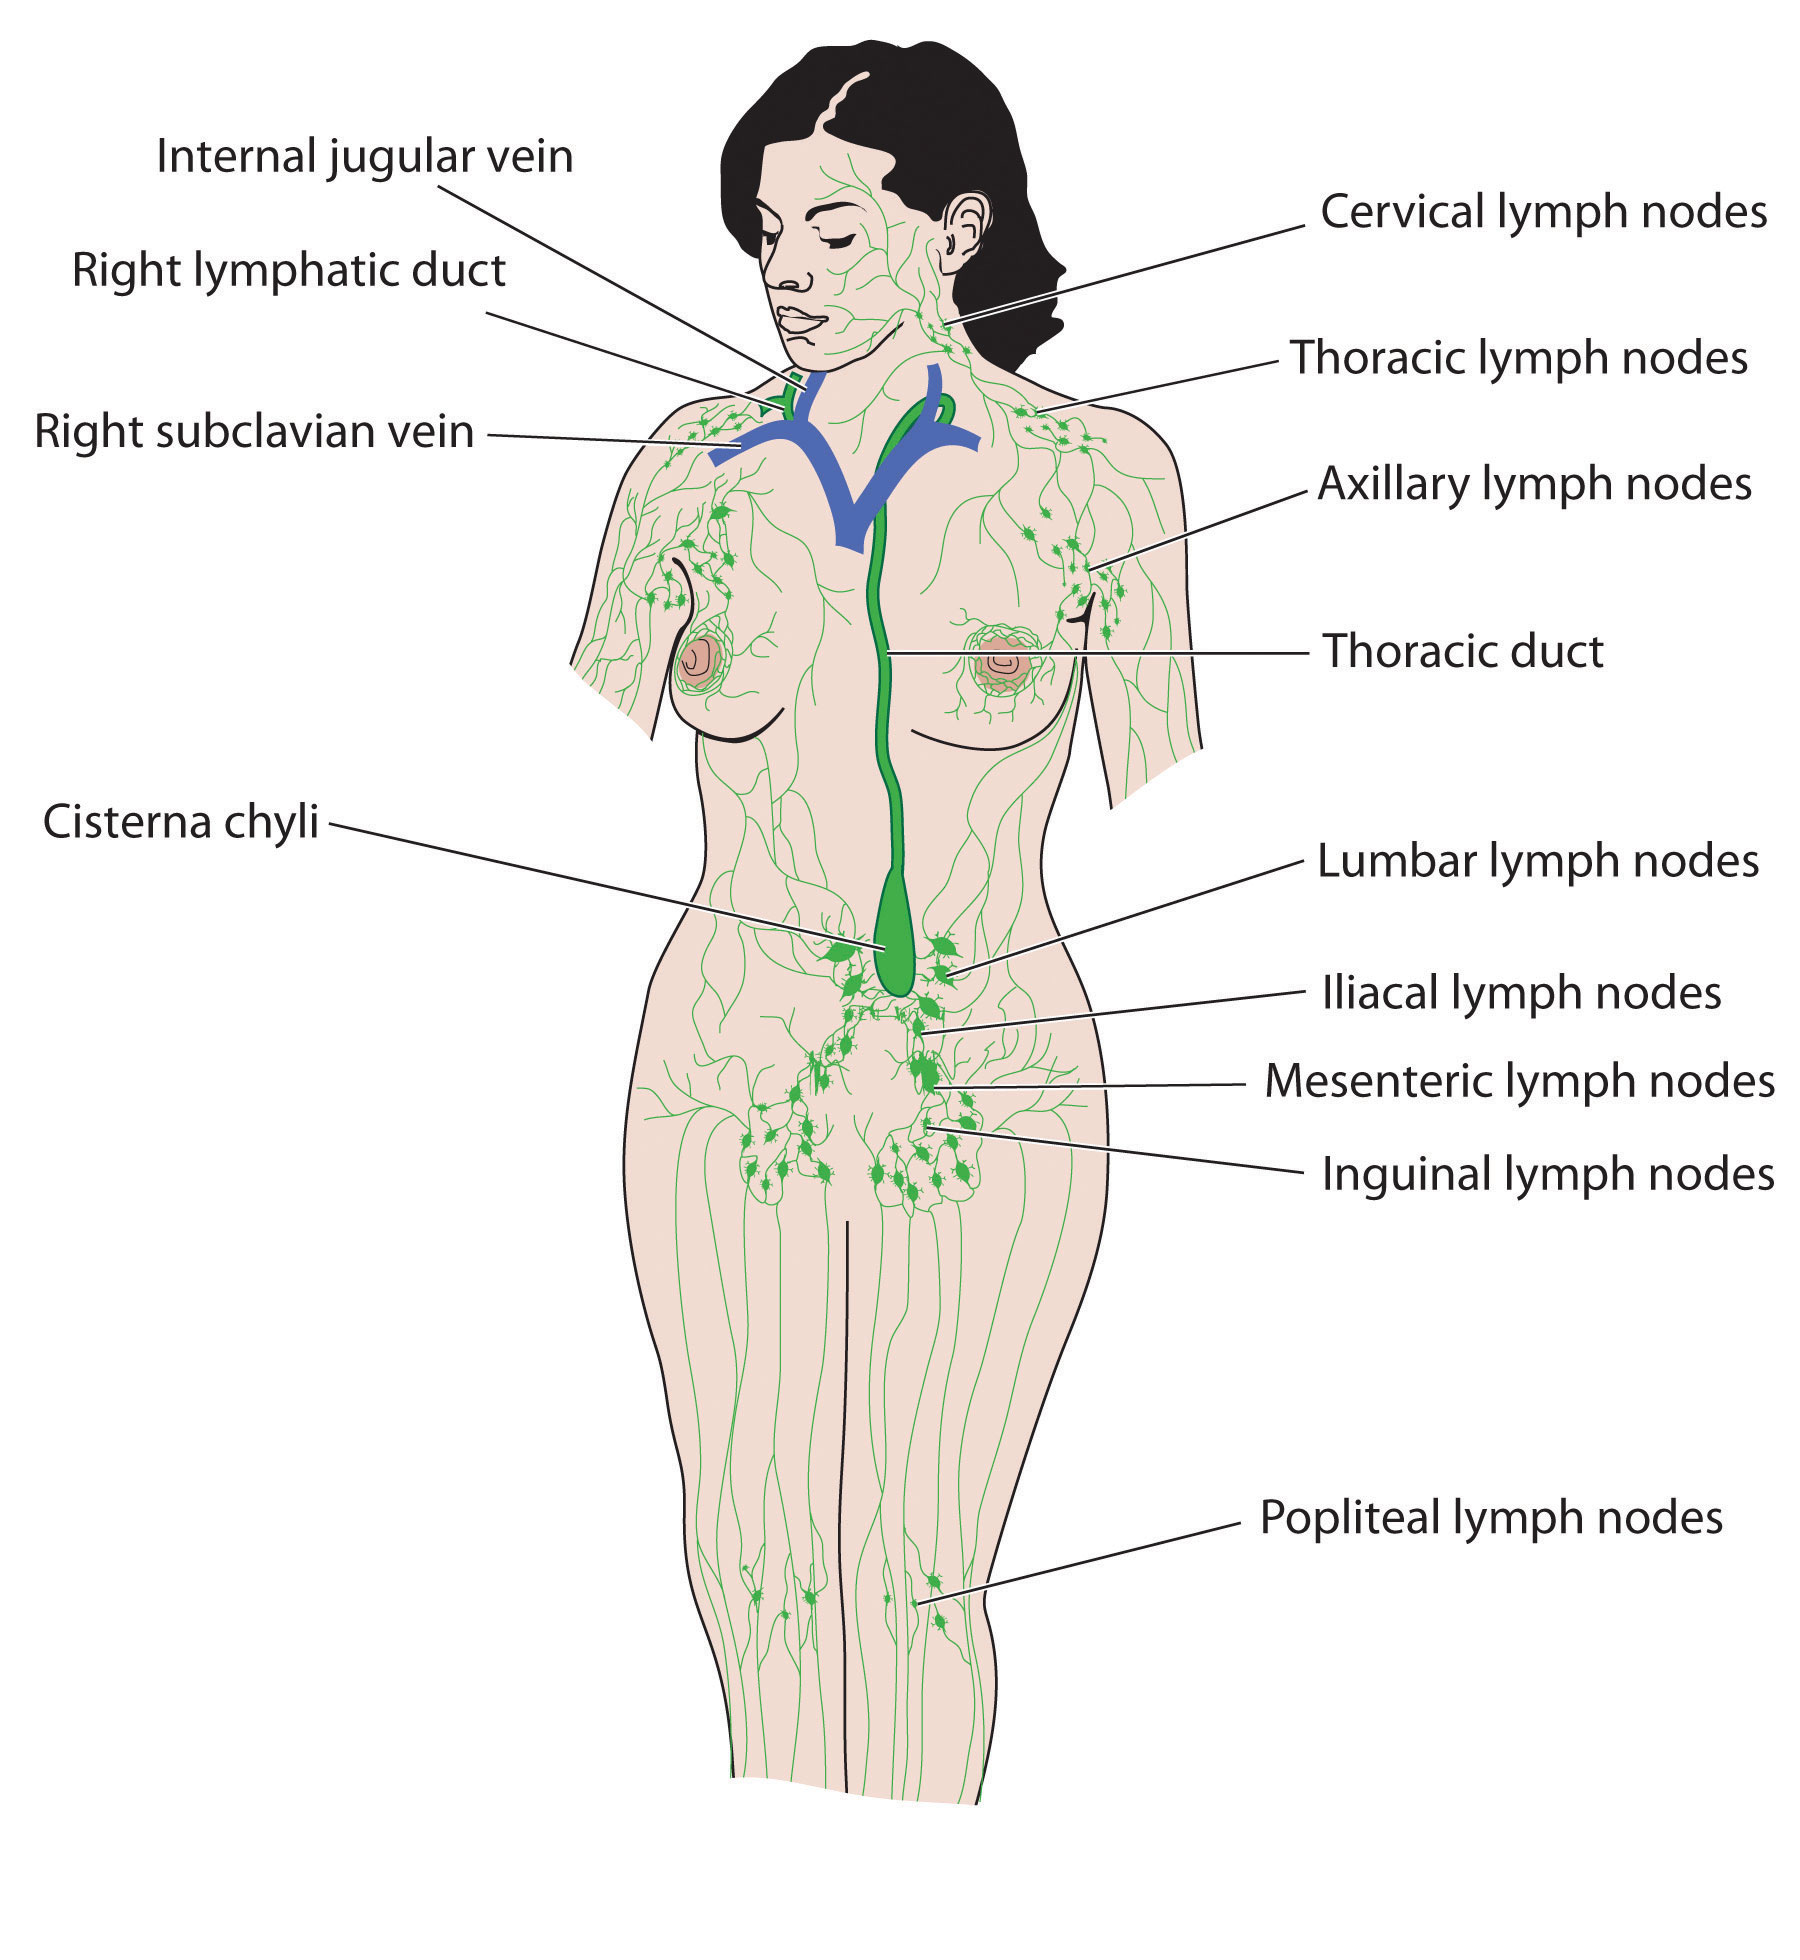 Chill clipart immune system Shows image Health and lymphatic